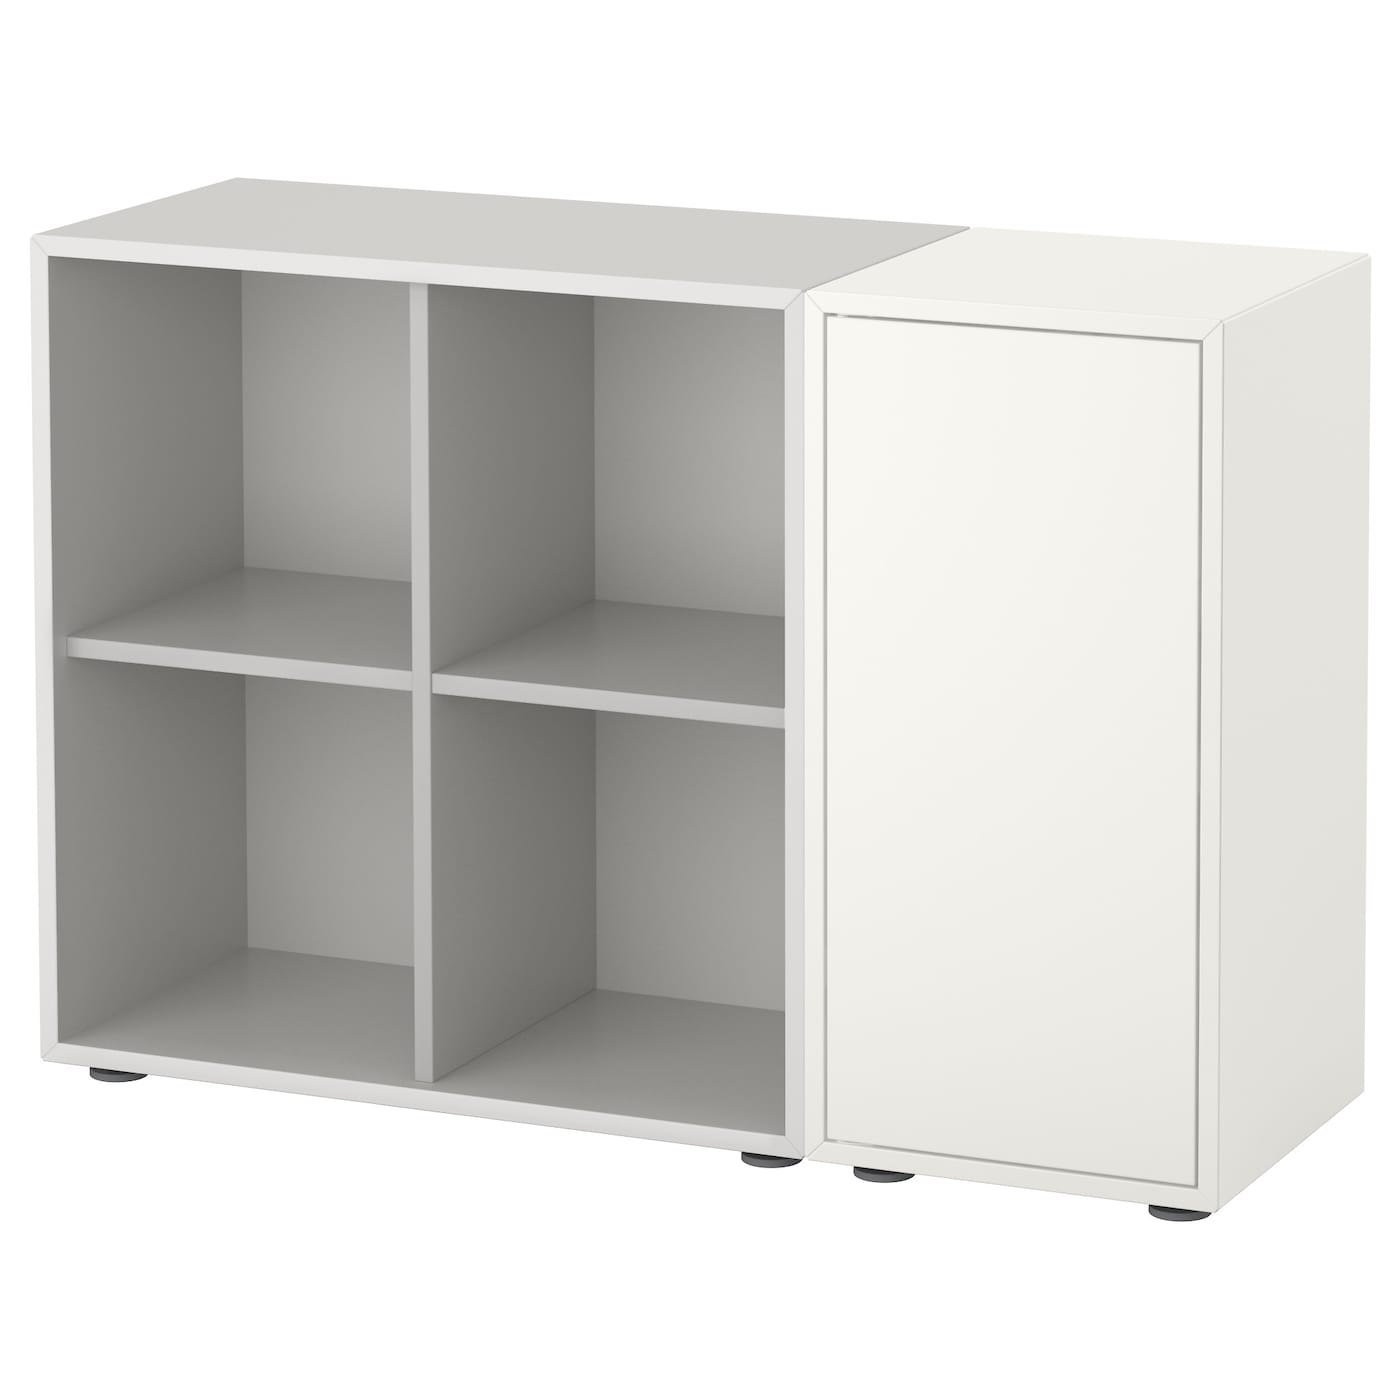 eket cabinet combination with feet white light grey 105 x 35 x 72 cm ikea. Black Bedroom Furniture Sets. Home Design Ideas